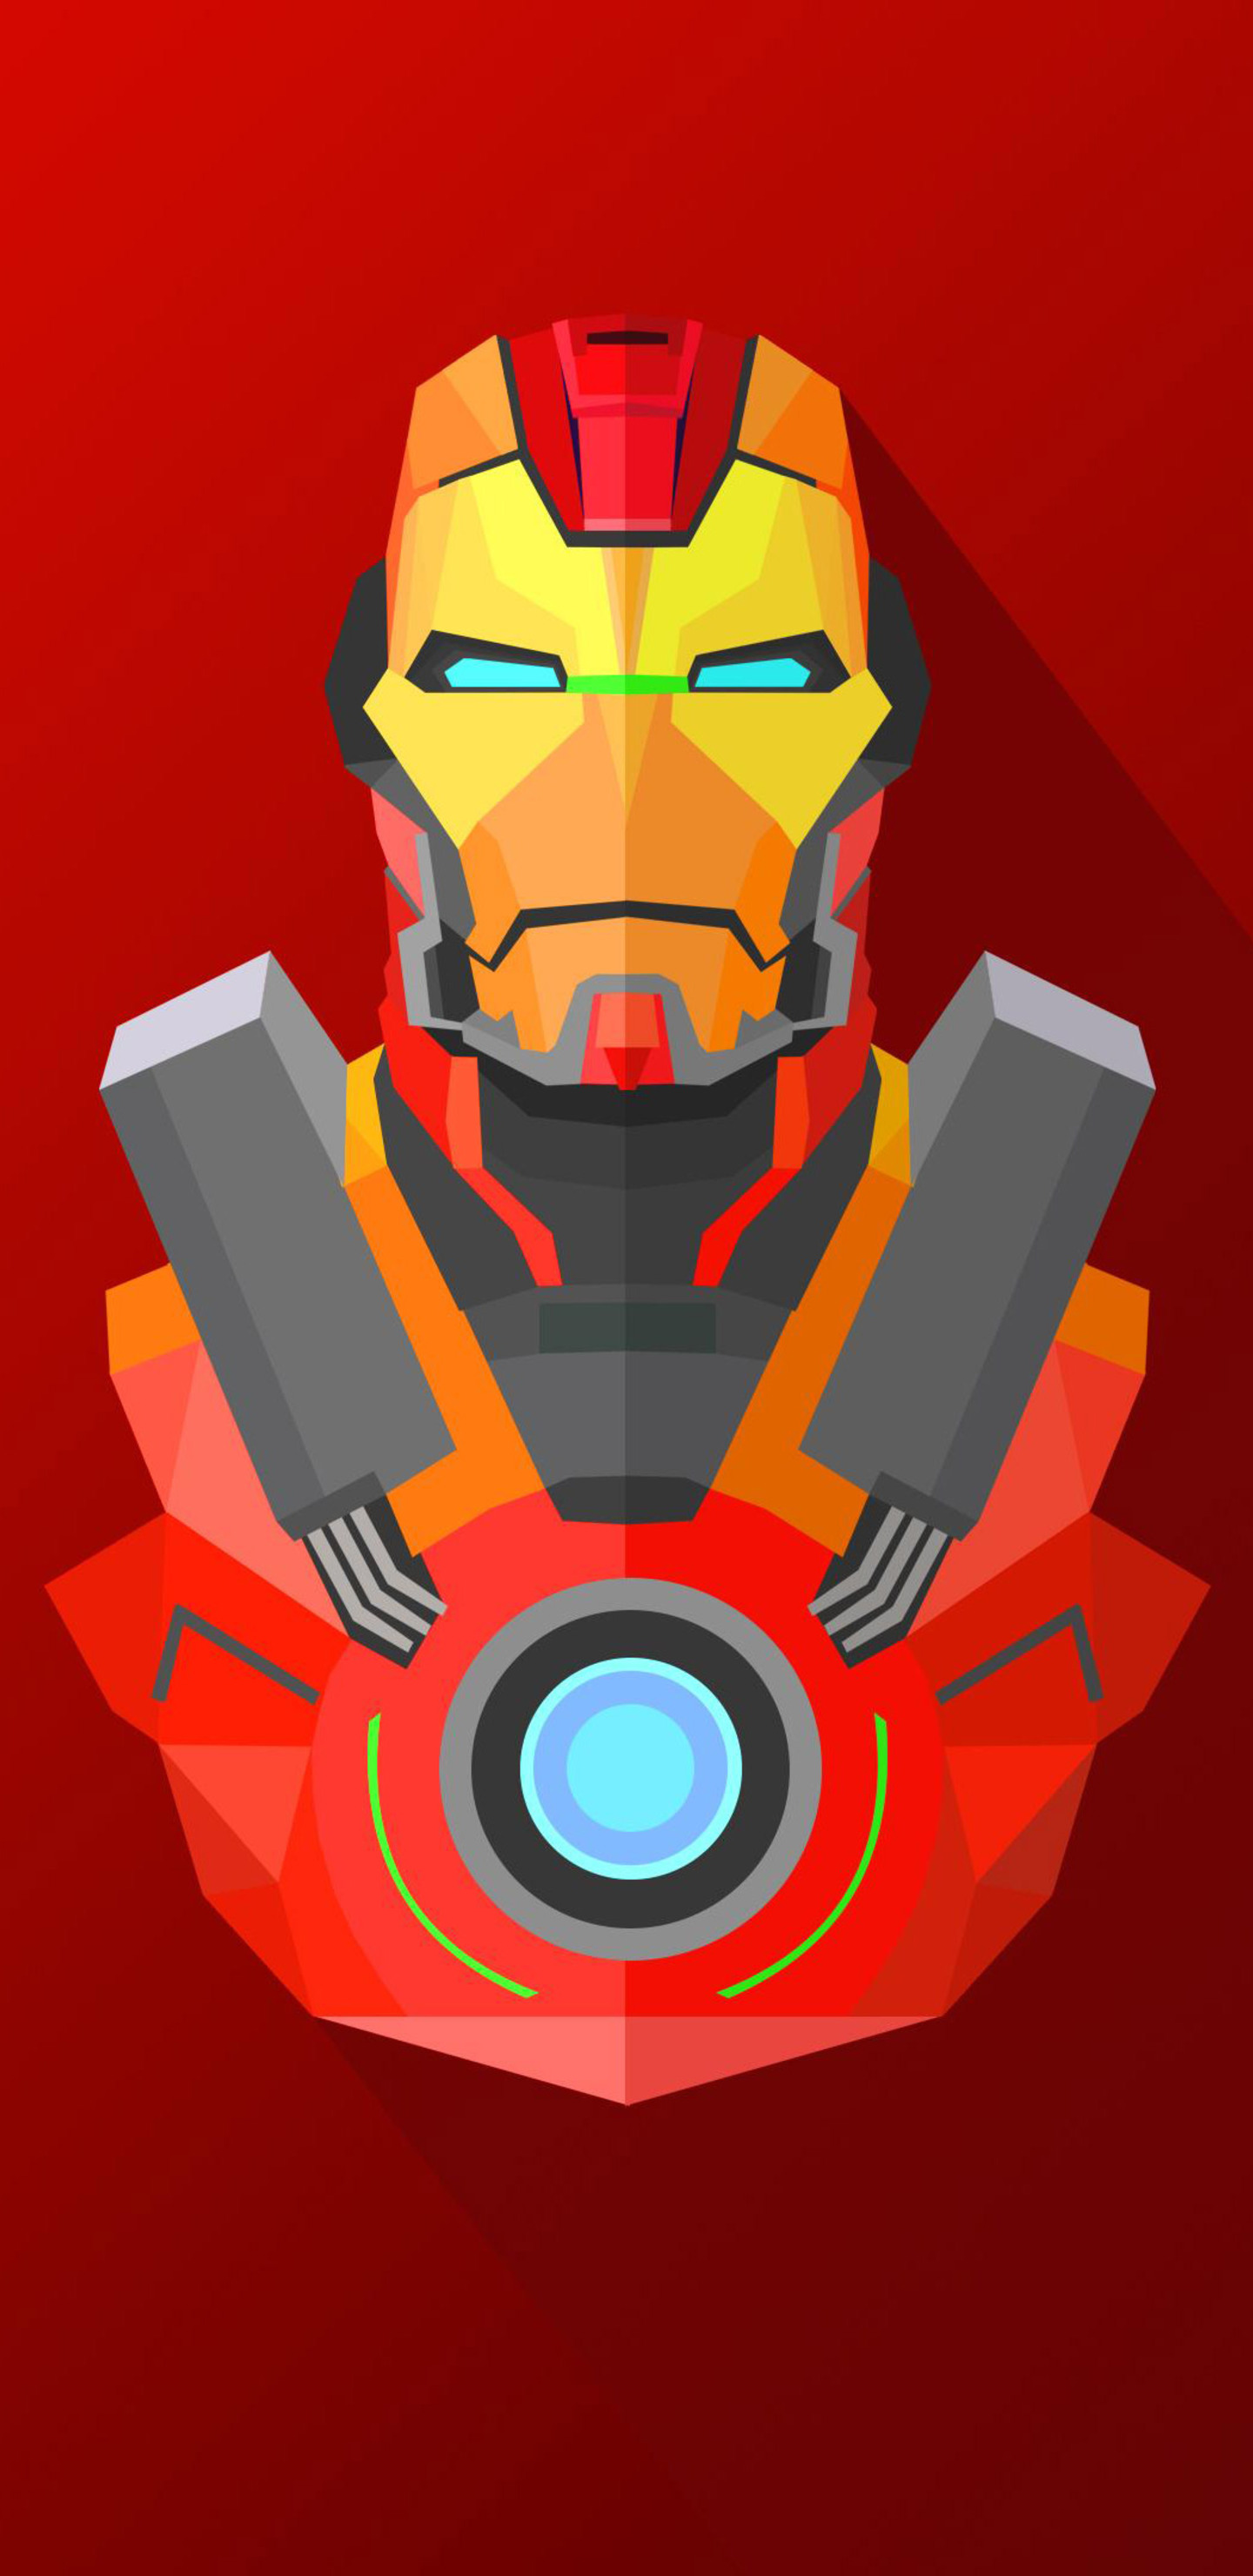 1440x2960 Iron Man Heartbreaker Artwork 4k Samsung Galaxy Note 9 8